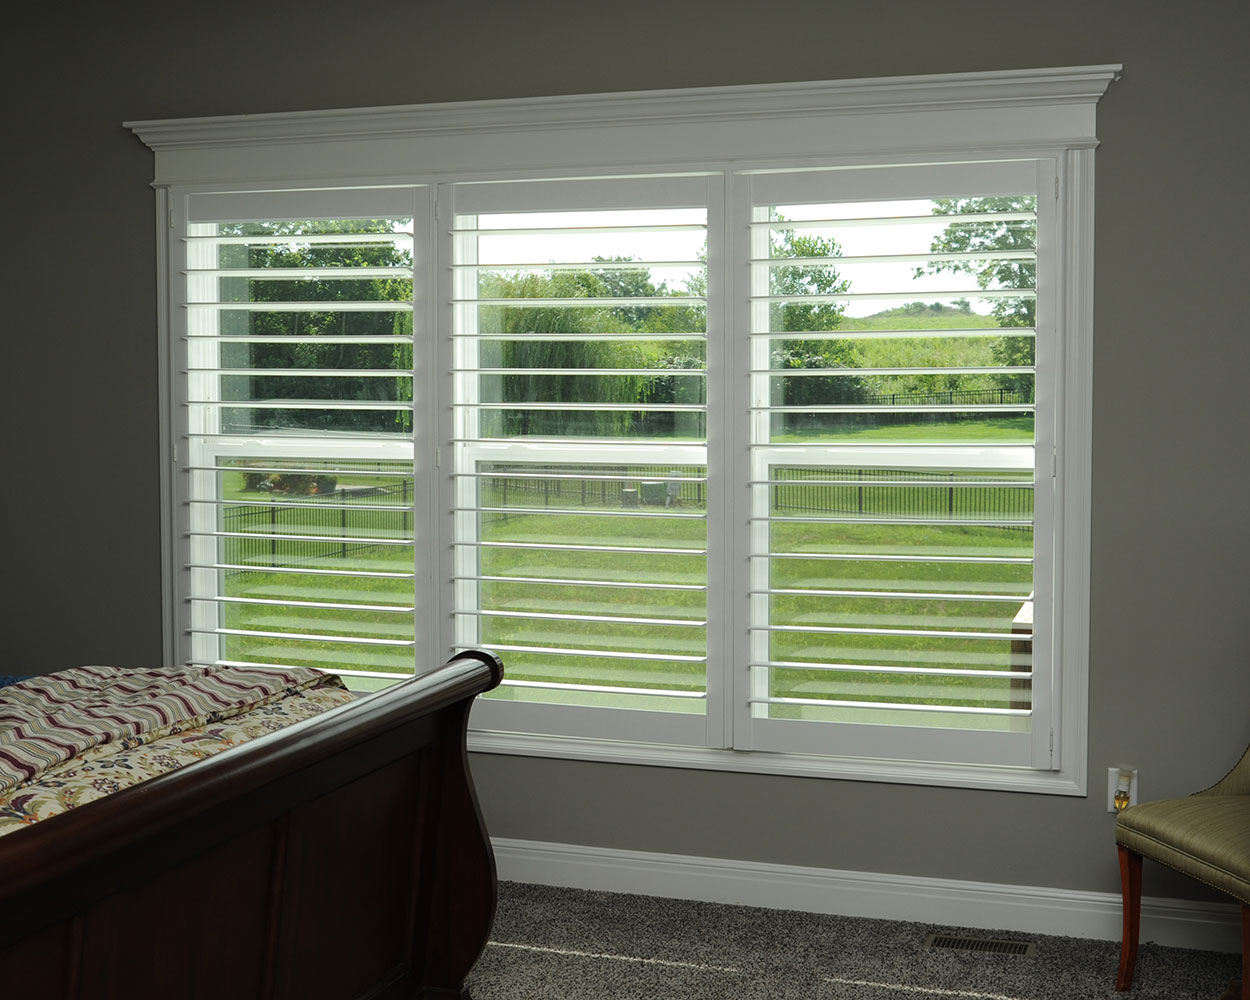 blinds window buy roman decoration custom curtains options treatments commercial treatment roller wooden remote affordable